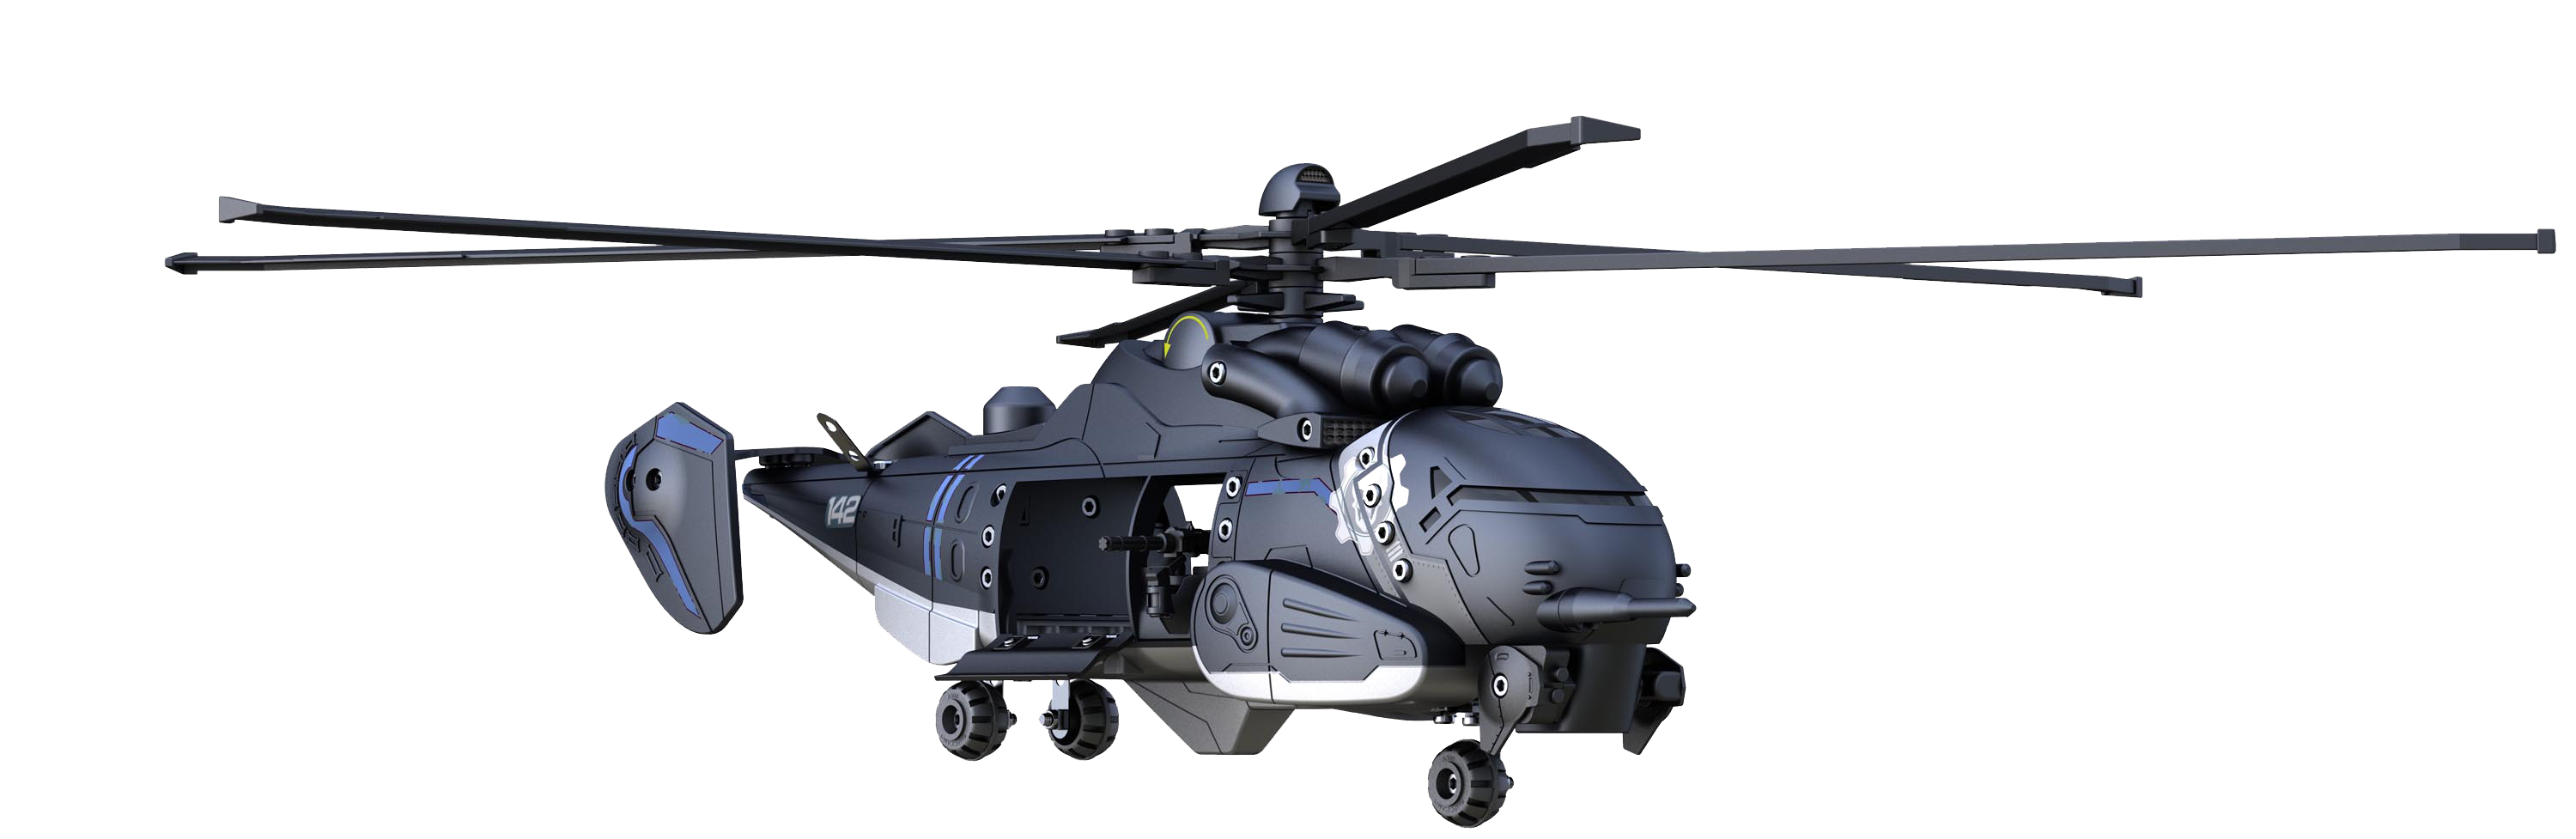 Helicopter png file. Army transparent images all